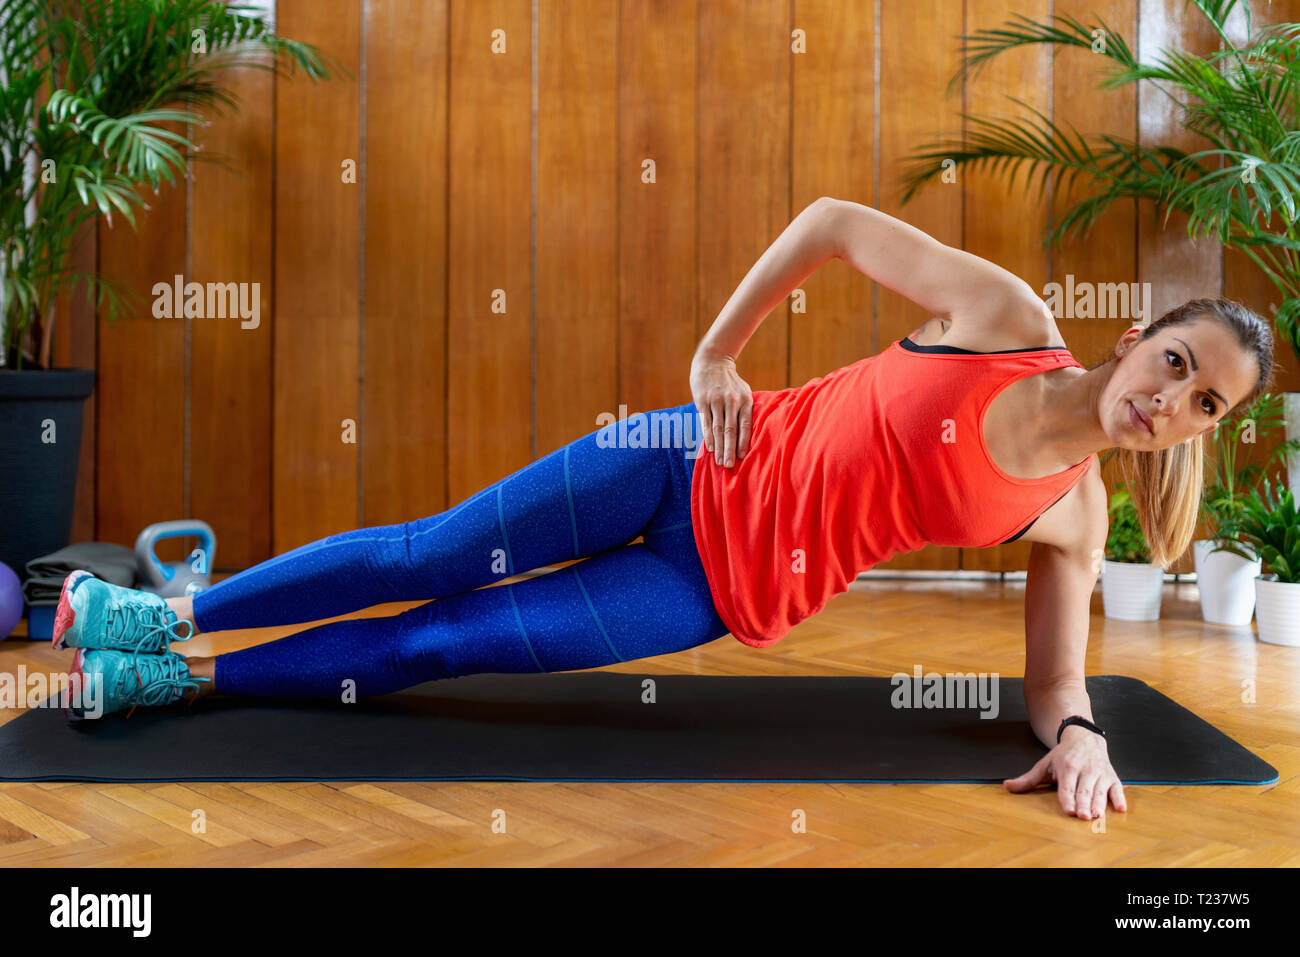 Woman doing High-intensity interval training at home. Woman Doing Side Plank Exercise. - Stock Image